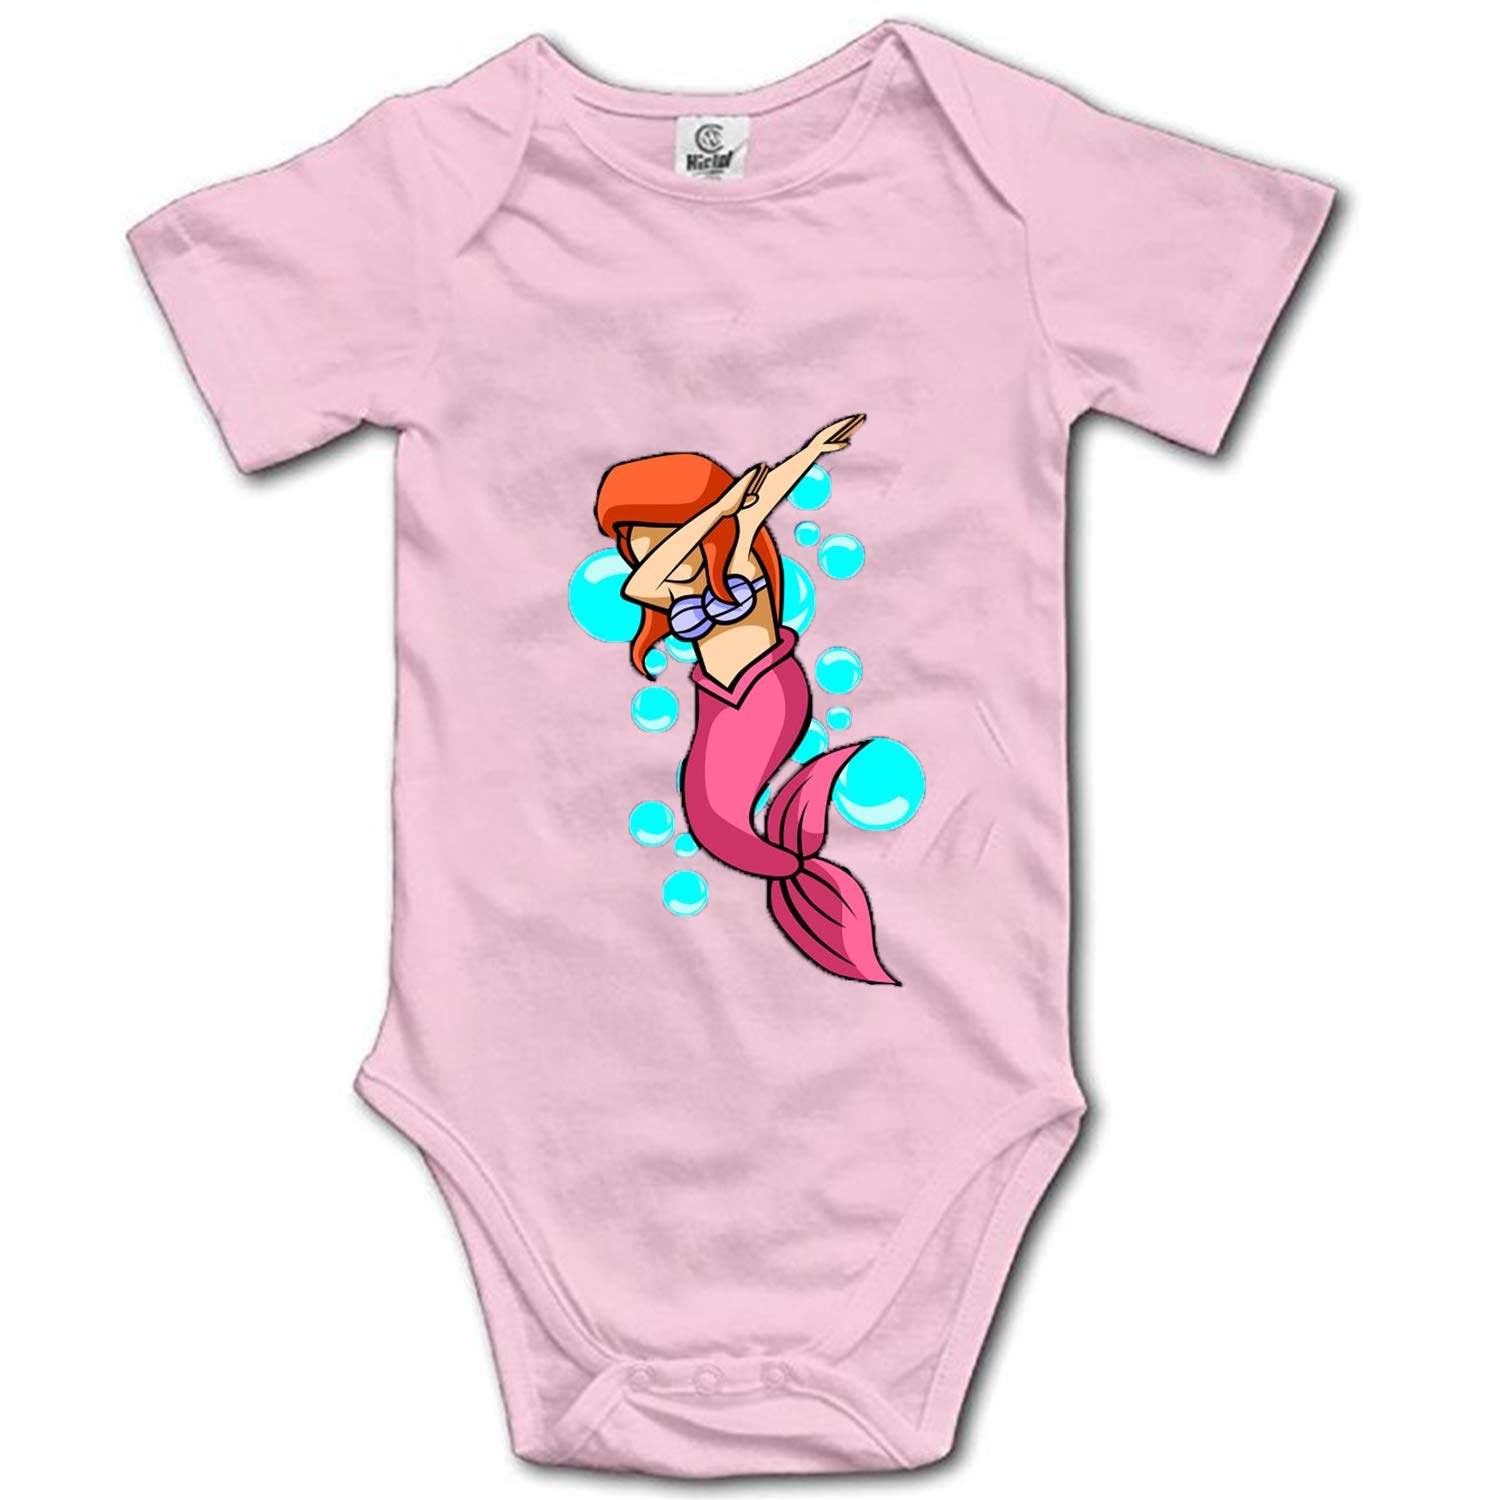 YPZOOS Baby Beer Collision Cotton Bodysuits